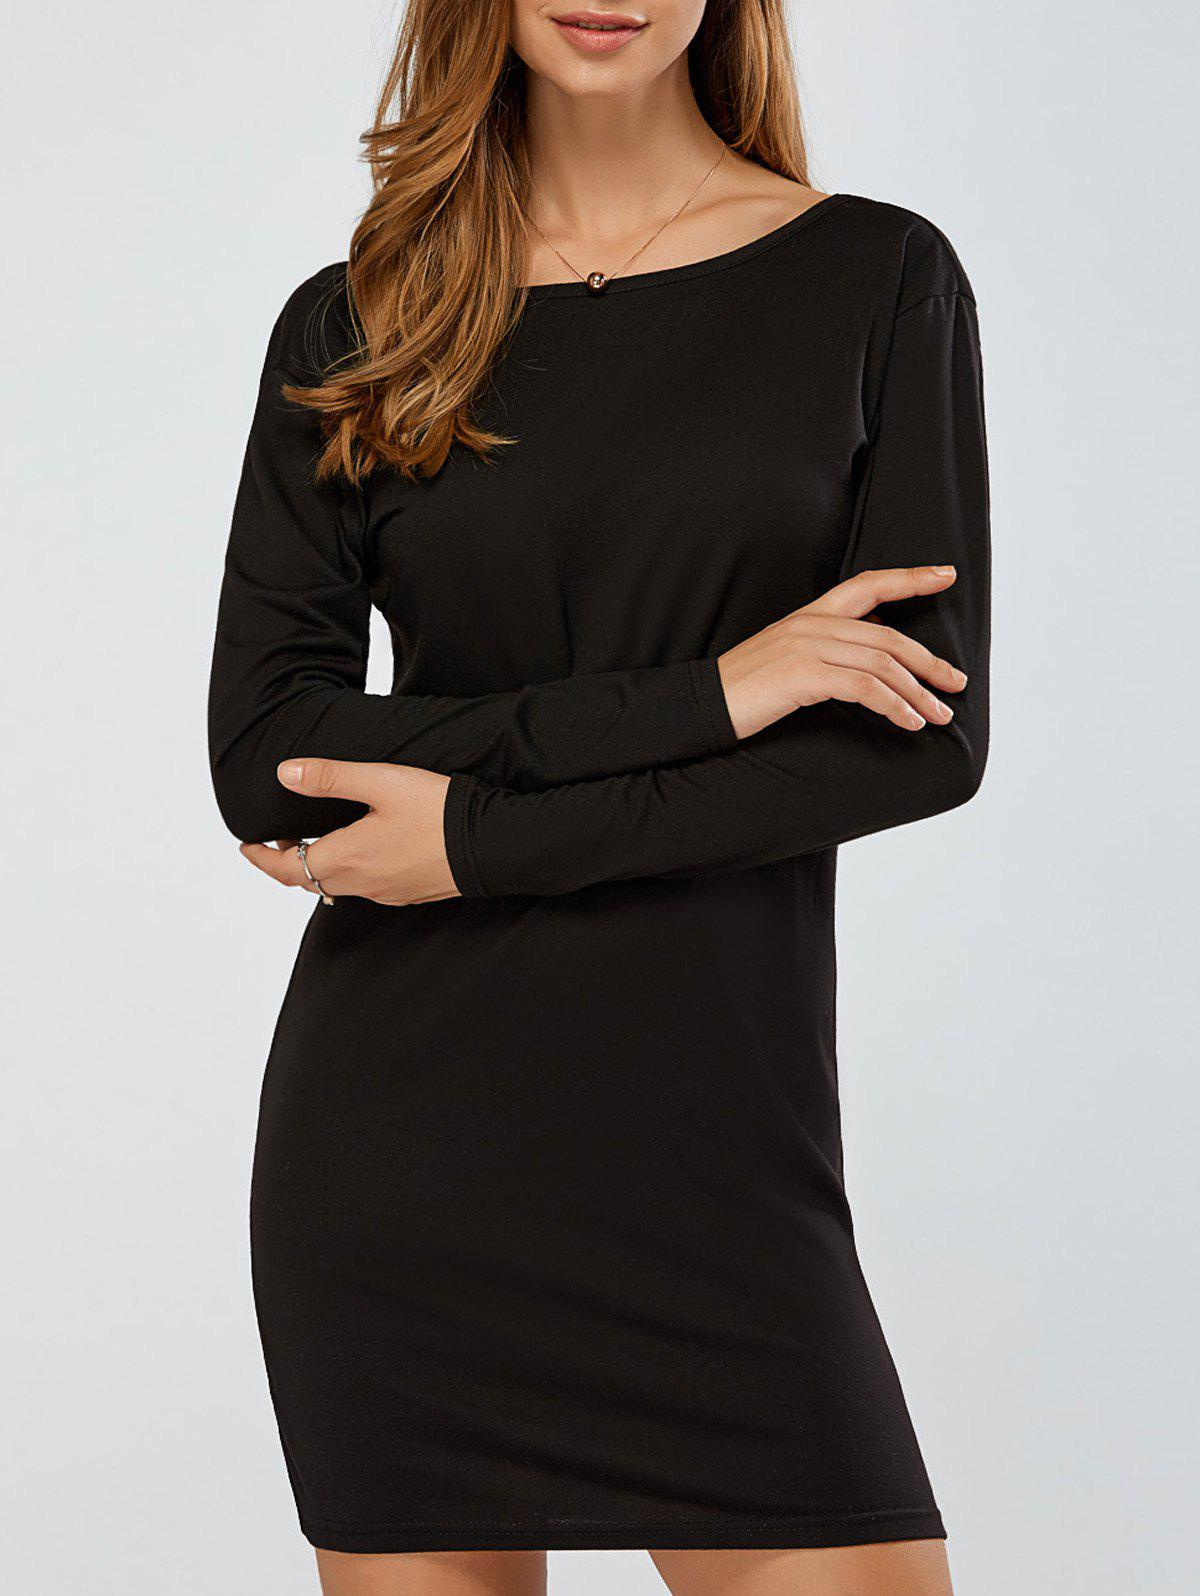 Fancy Long Sleeves Backless Knitted Dress